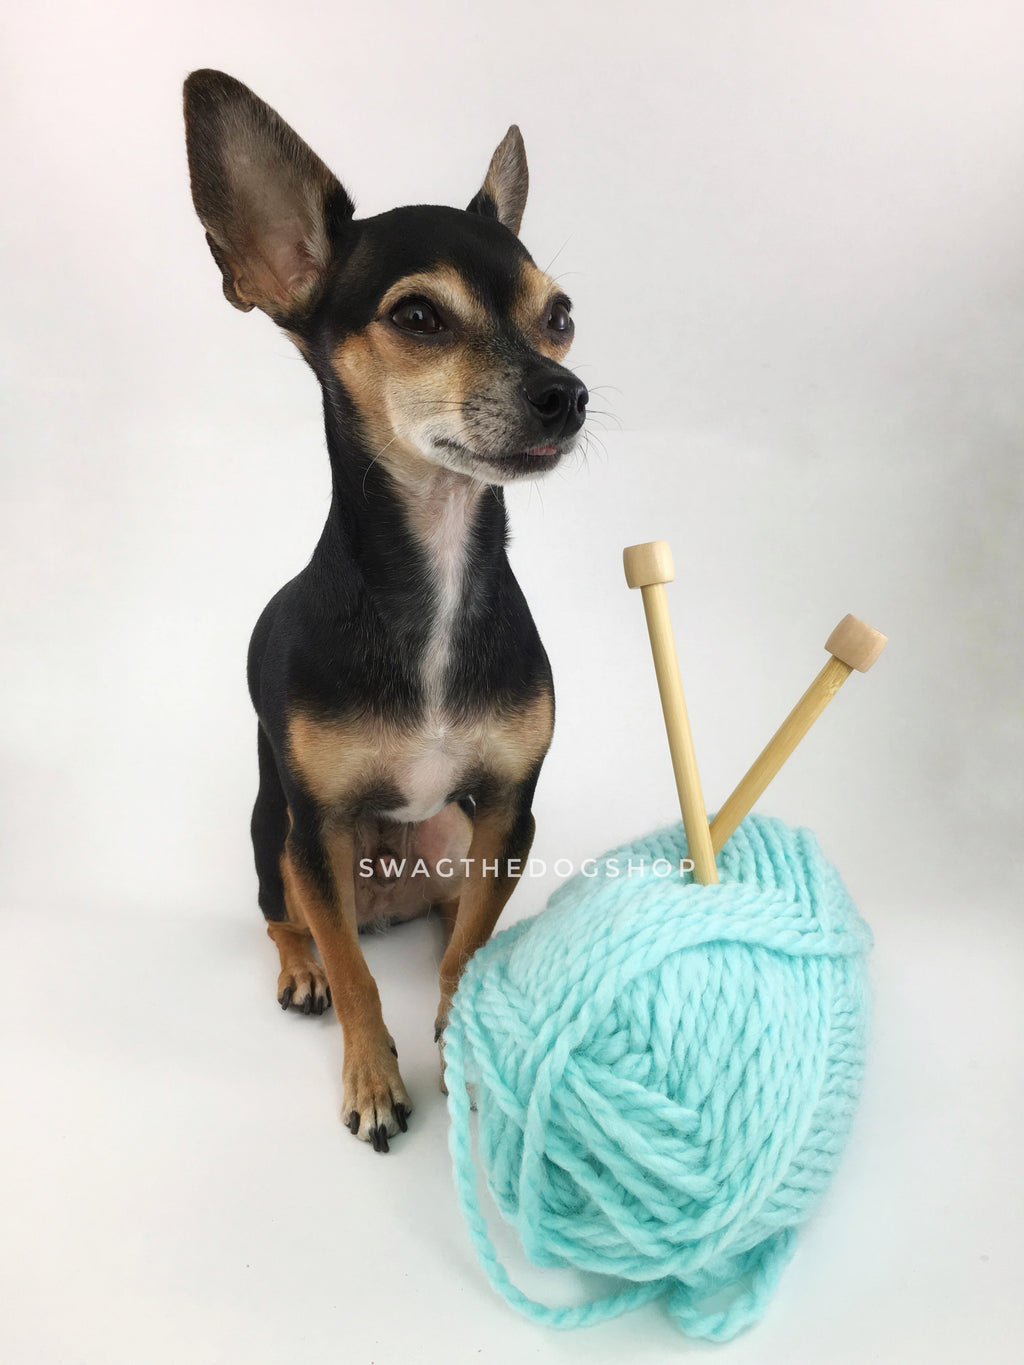 Turquoise Swagsnood - Yarn with Cute Chihuahua Dog. Turquoise Color Alpaca Yarn Dog Snood with Accent Button